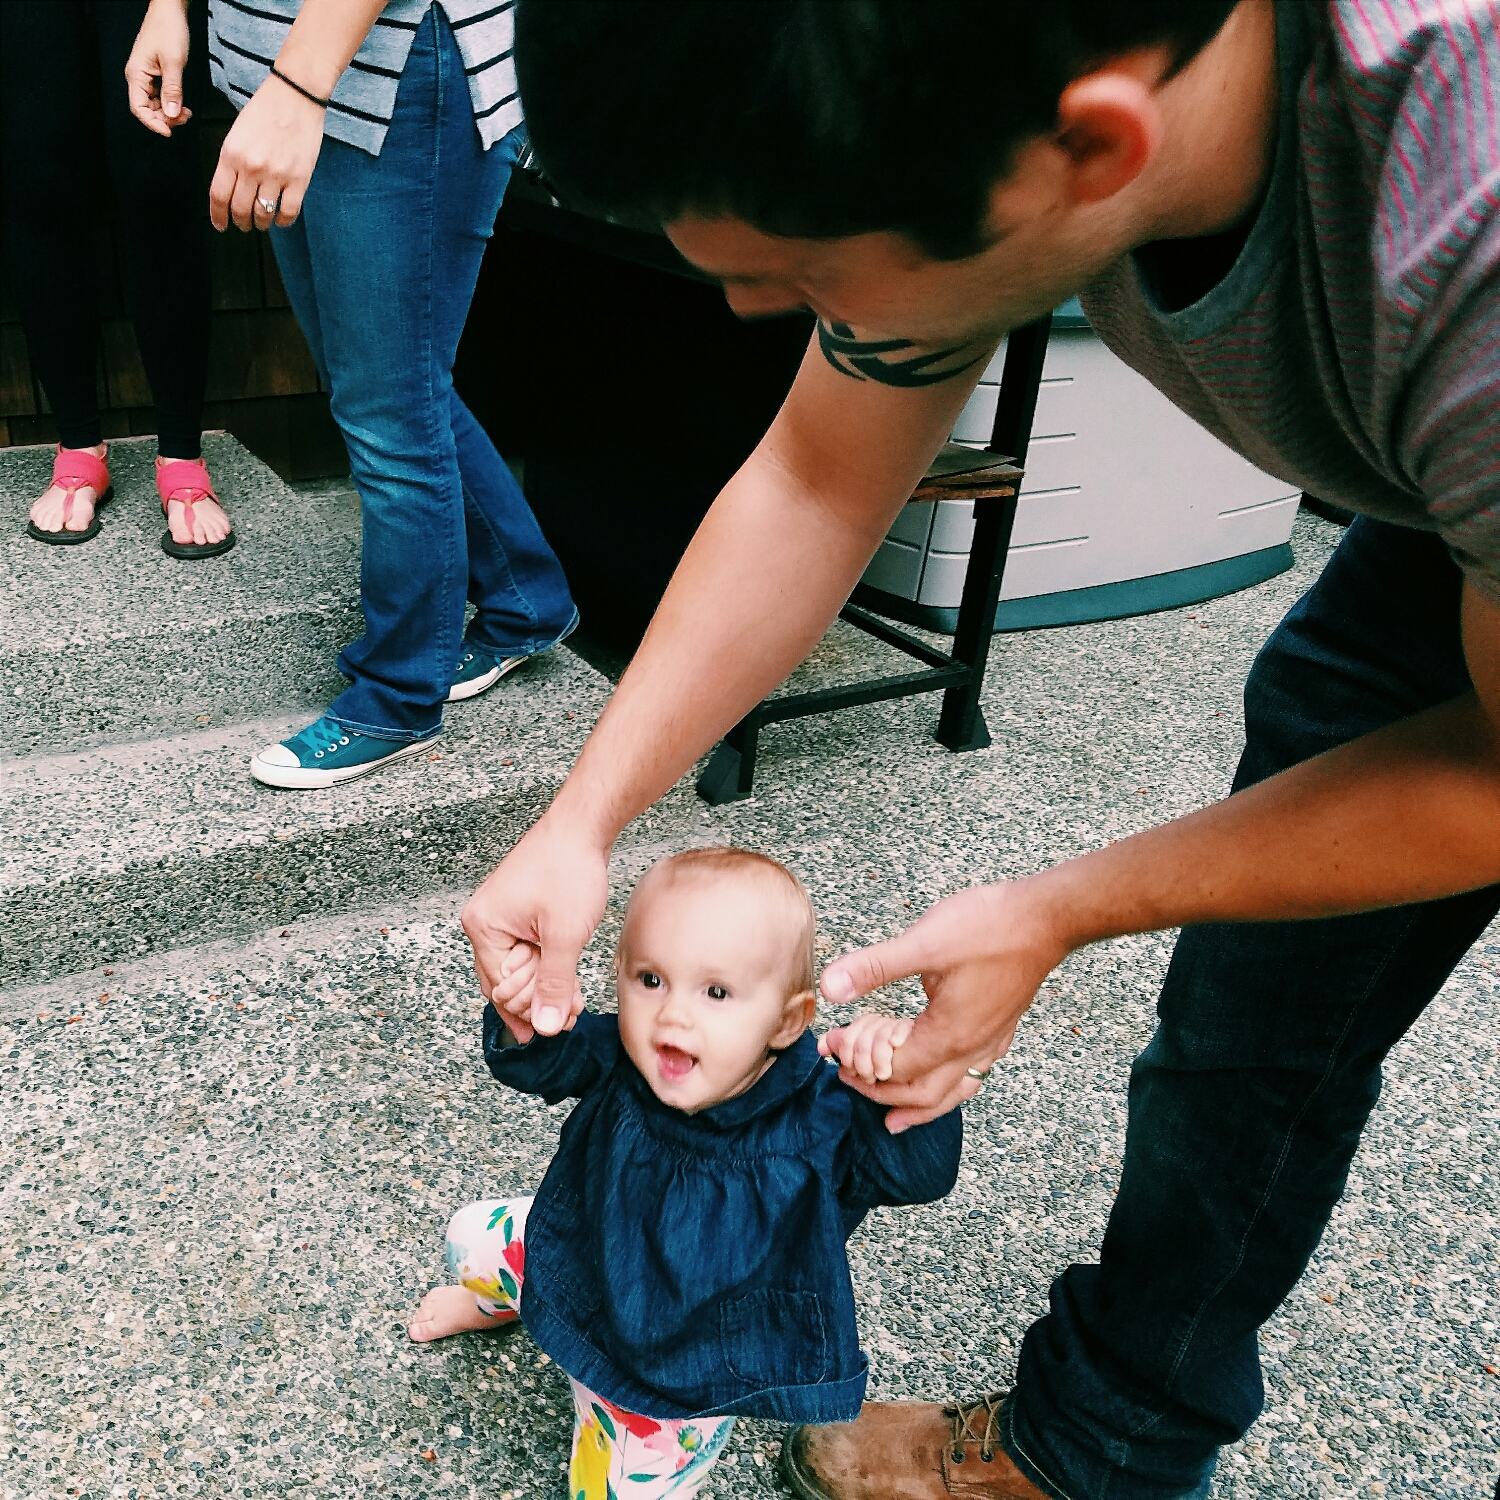 At my mom's retirement party on Friday, my adorable niece totally stole the show, as always